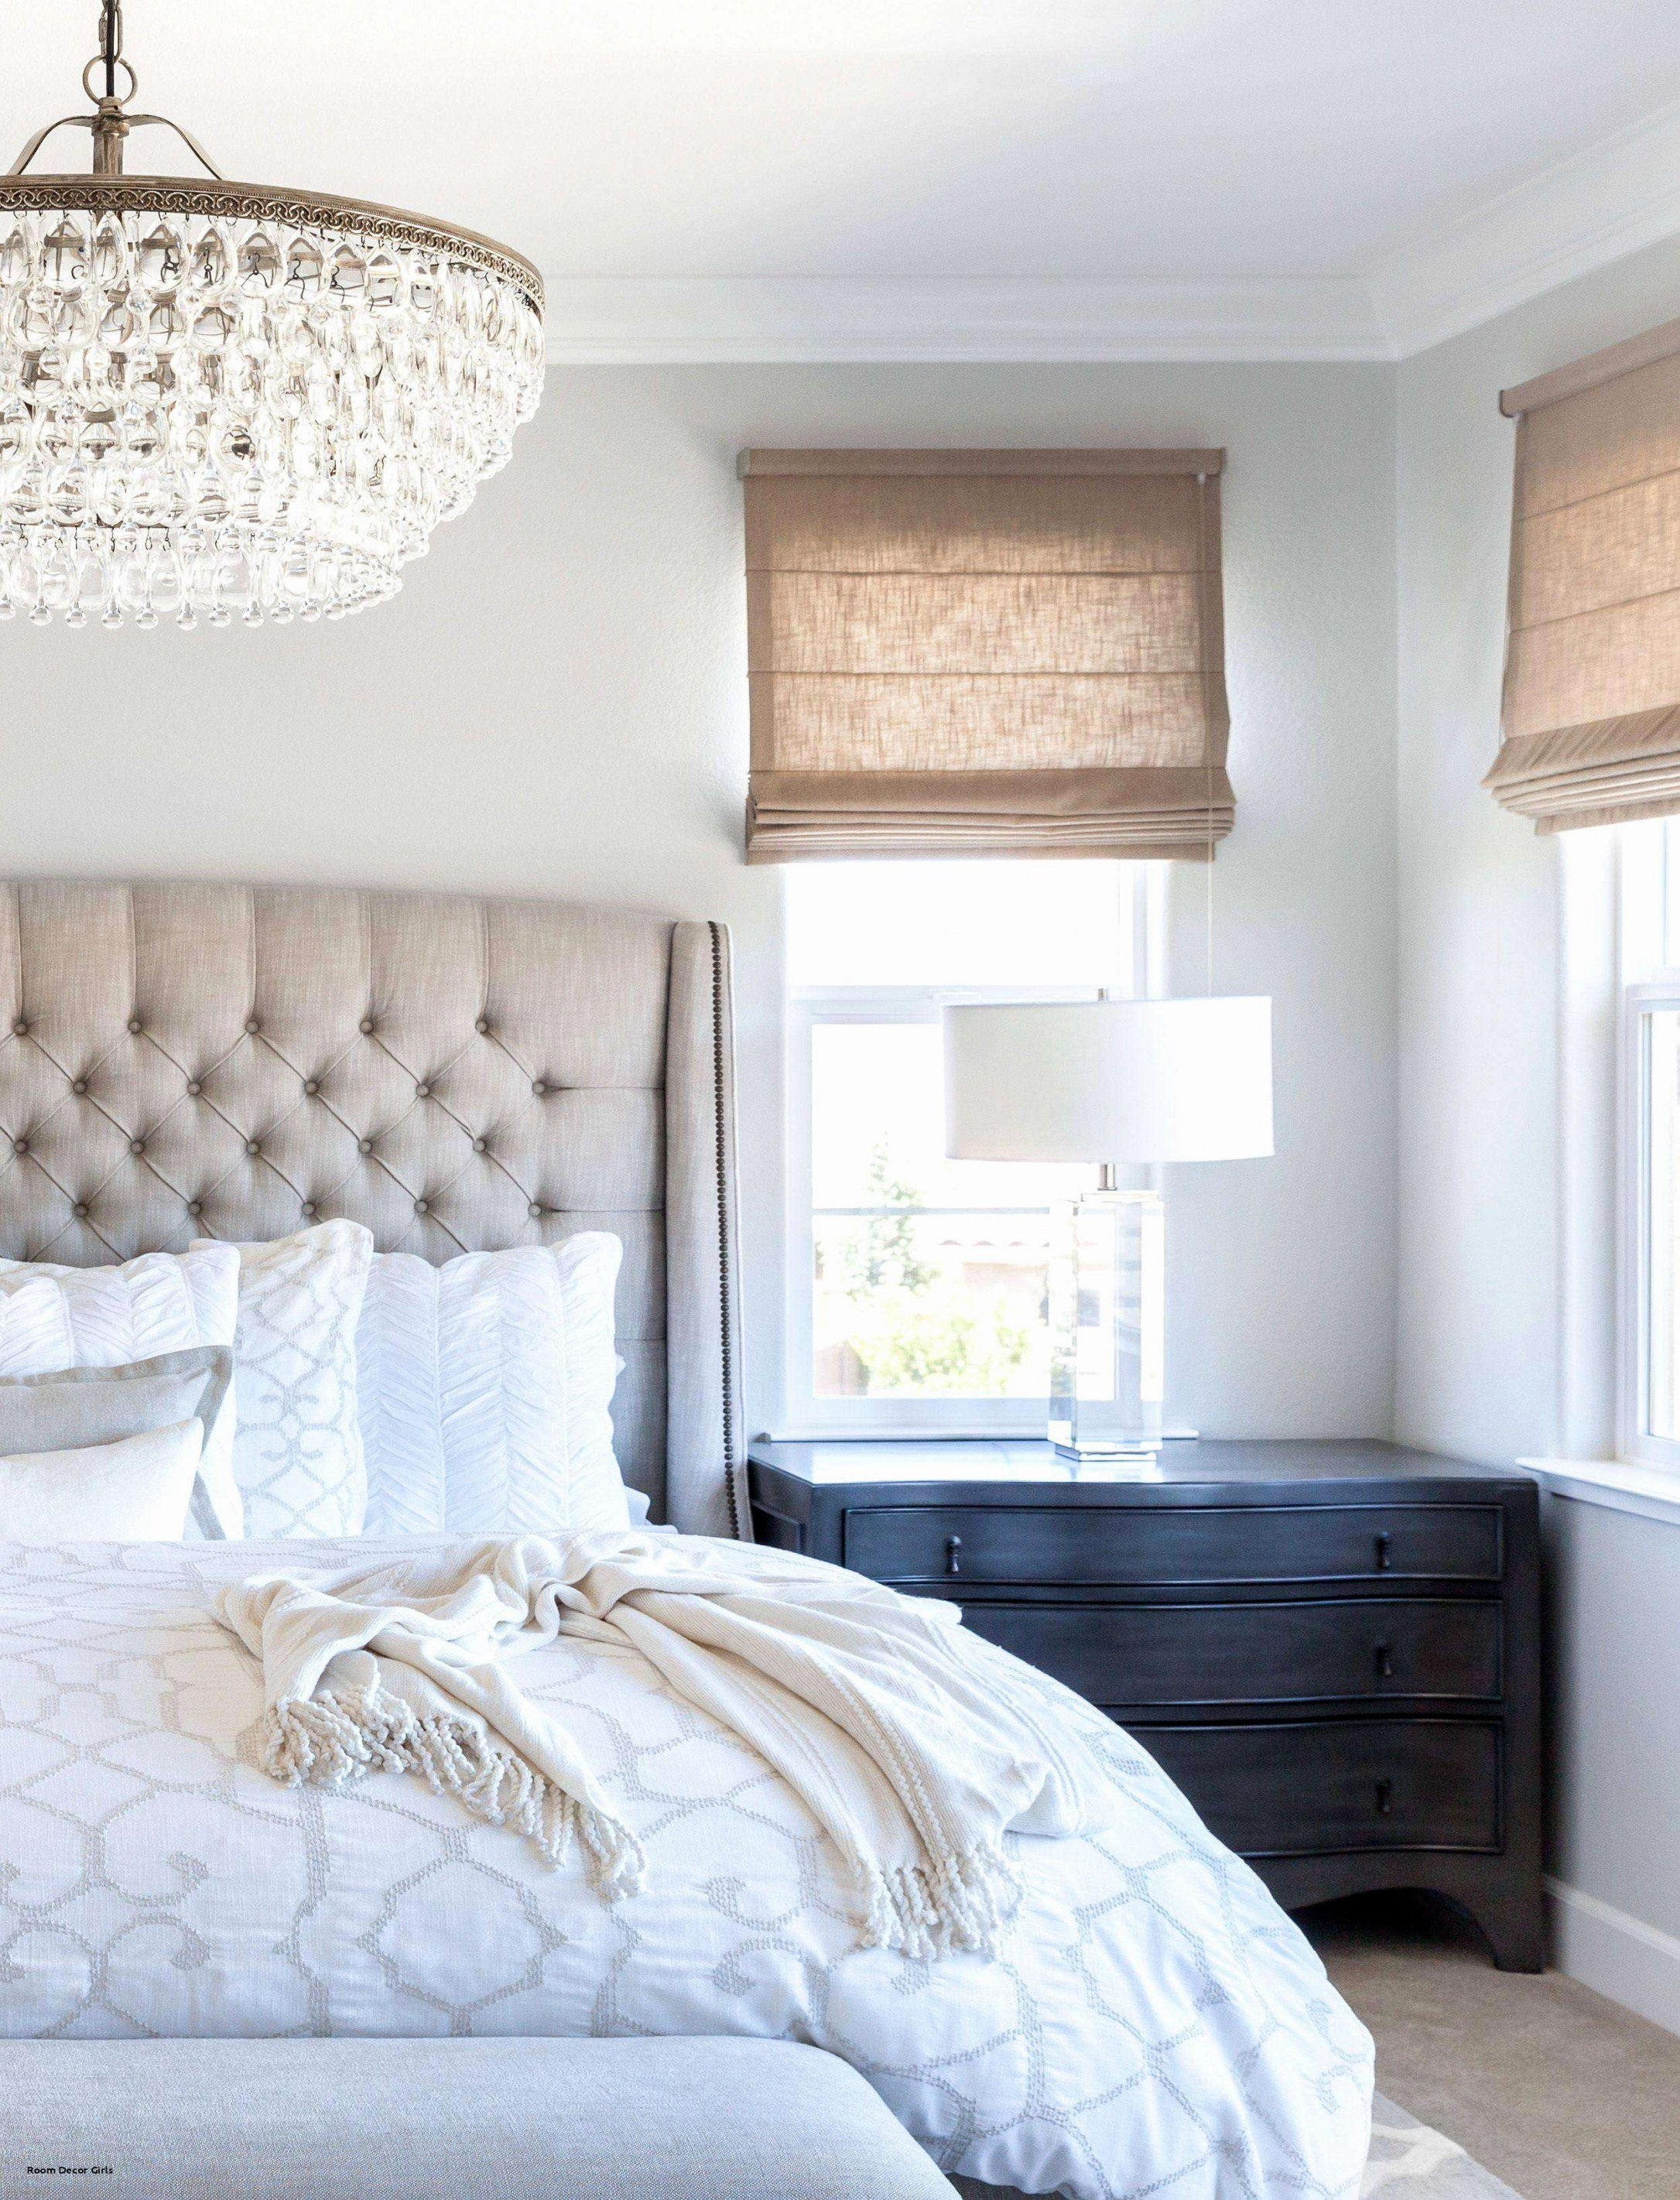 Little Boy Bedroom Set Luxury Bedrooms for Girls 48 Awesome Bedroom Ideas for La S Home